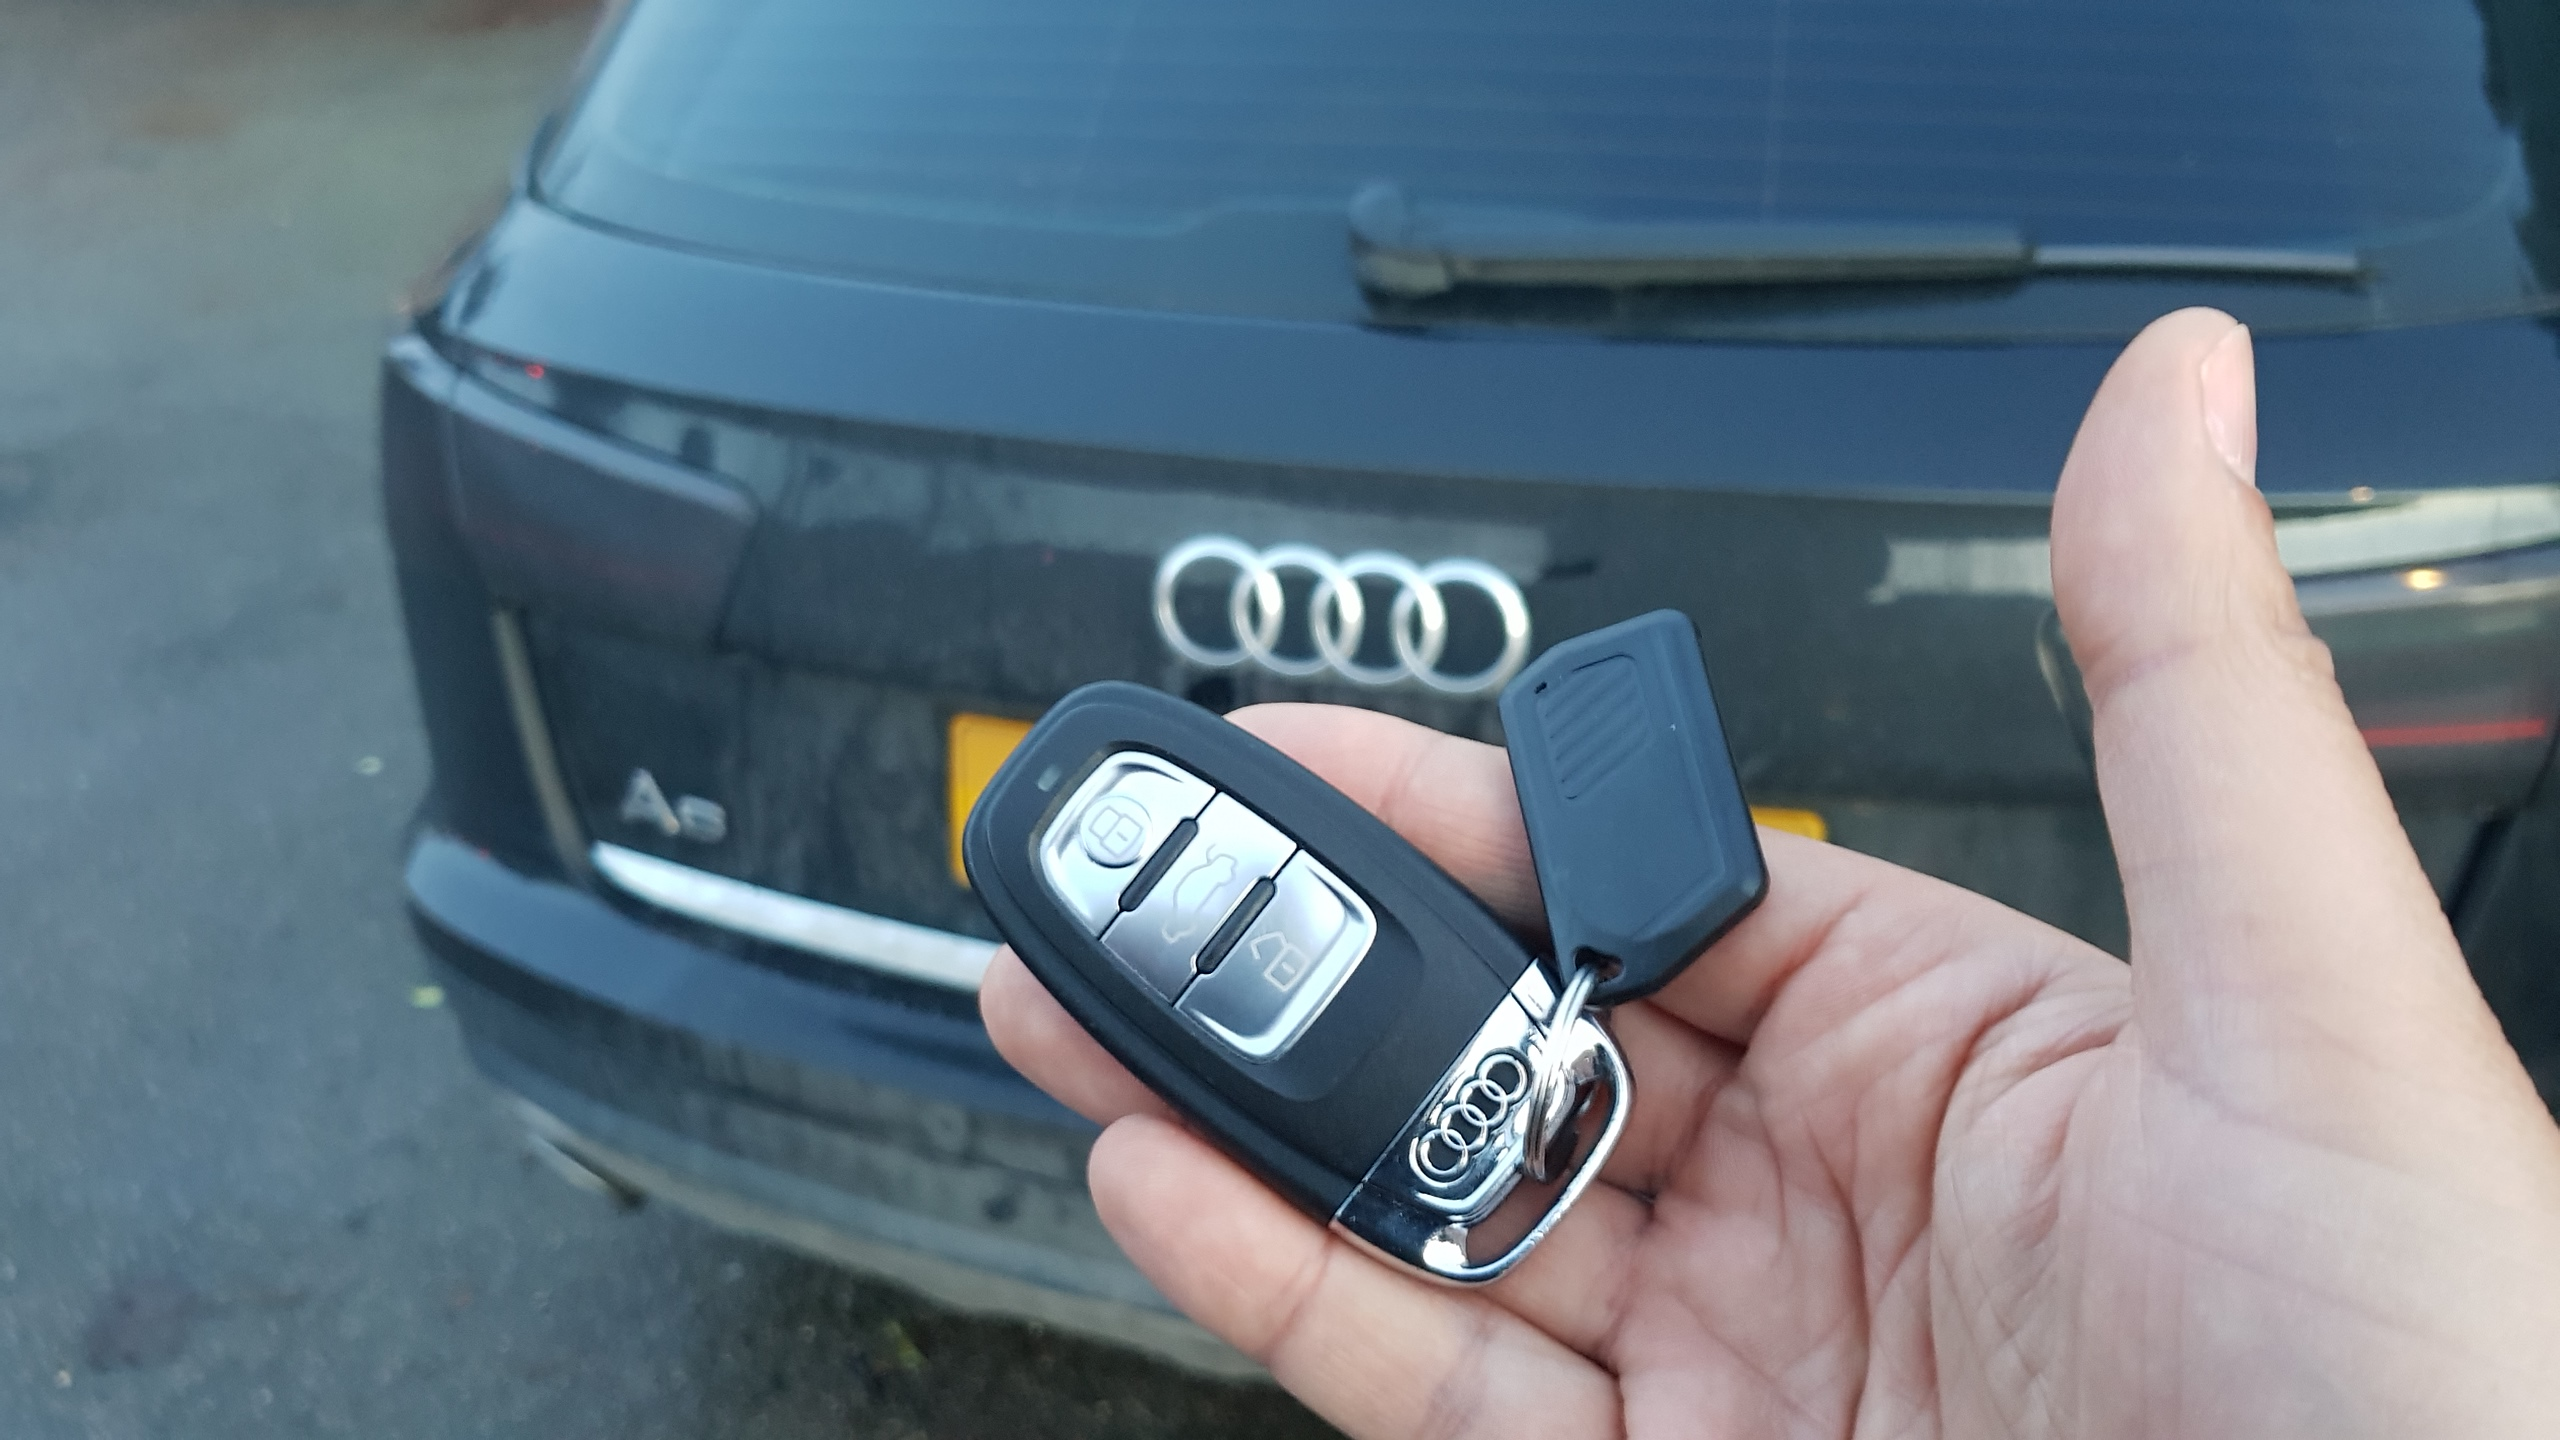 Autowatch Ghost ADR Key theft cloning immobiliser